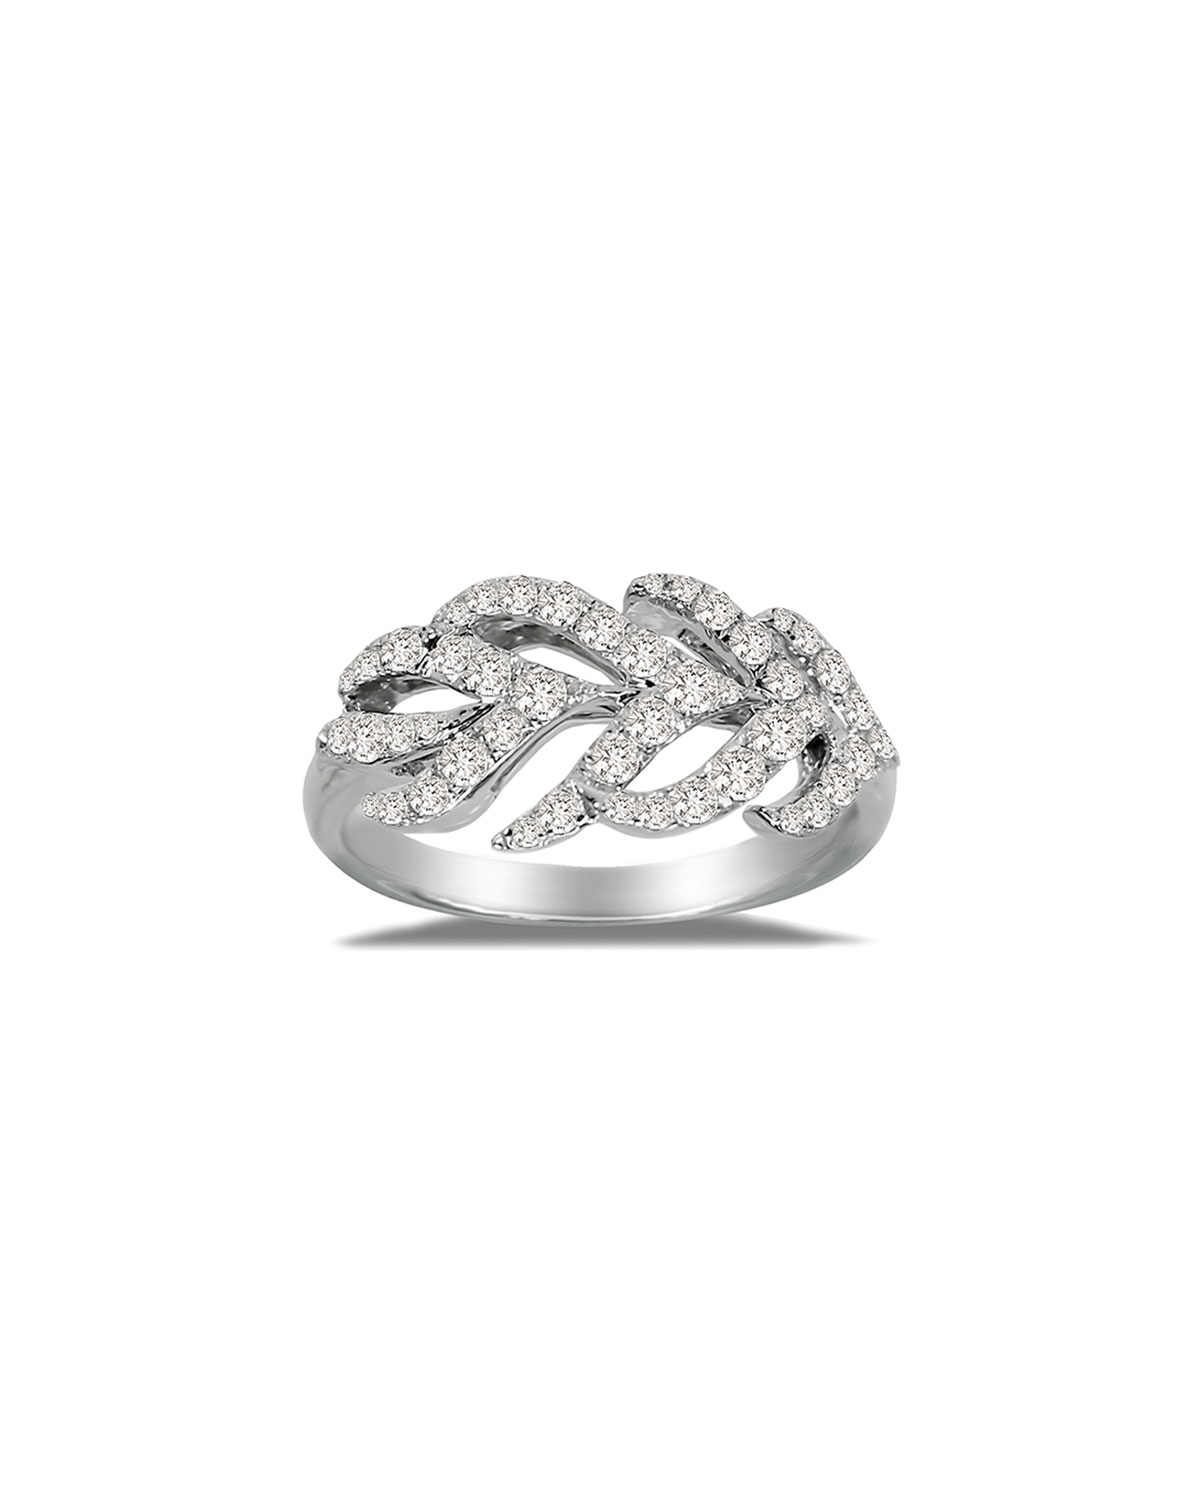 SUTRA 18K White Gold & Diamond Feather Ring, Size 7